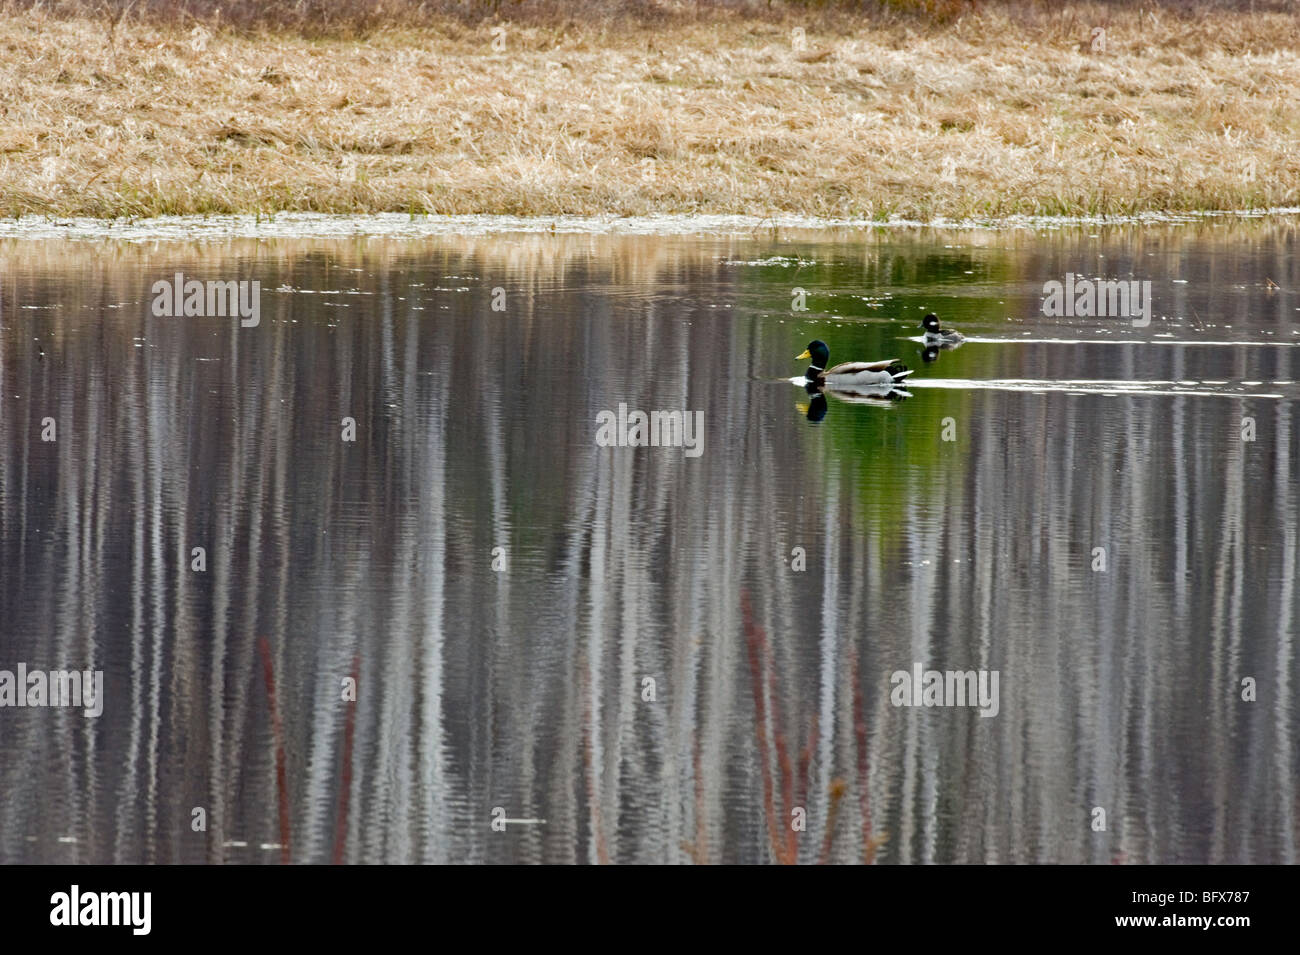 Birch tree reflections in beaver pond, with migrating waterfowl, Greater Sudbury, Ontario, Canada - Stock Image